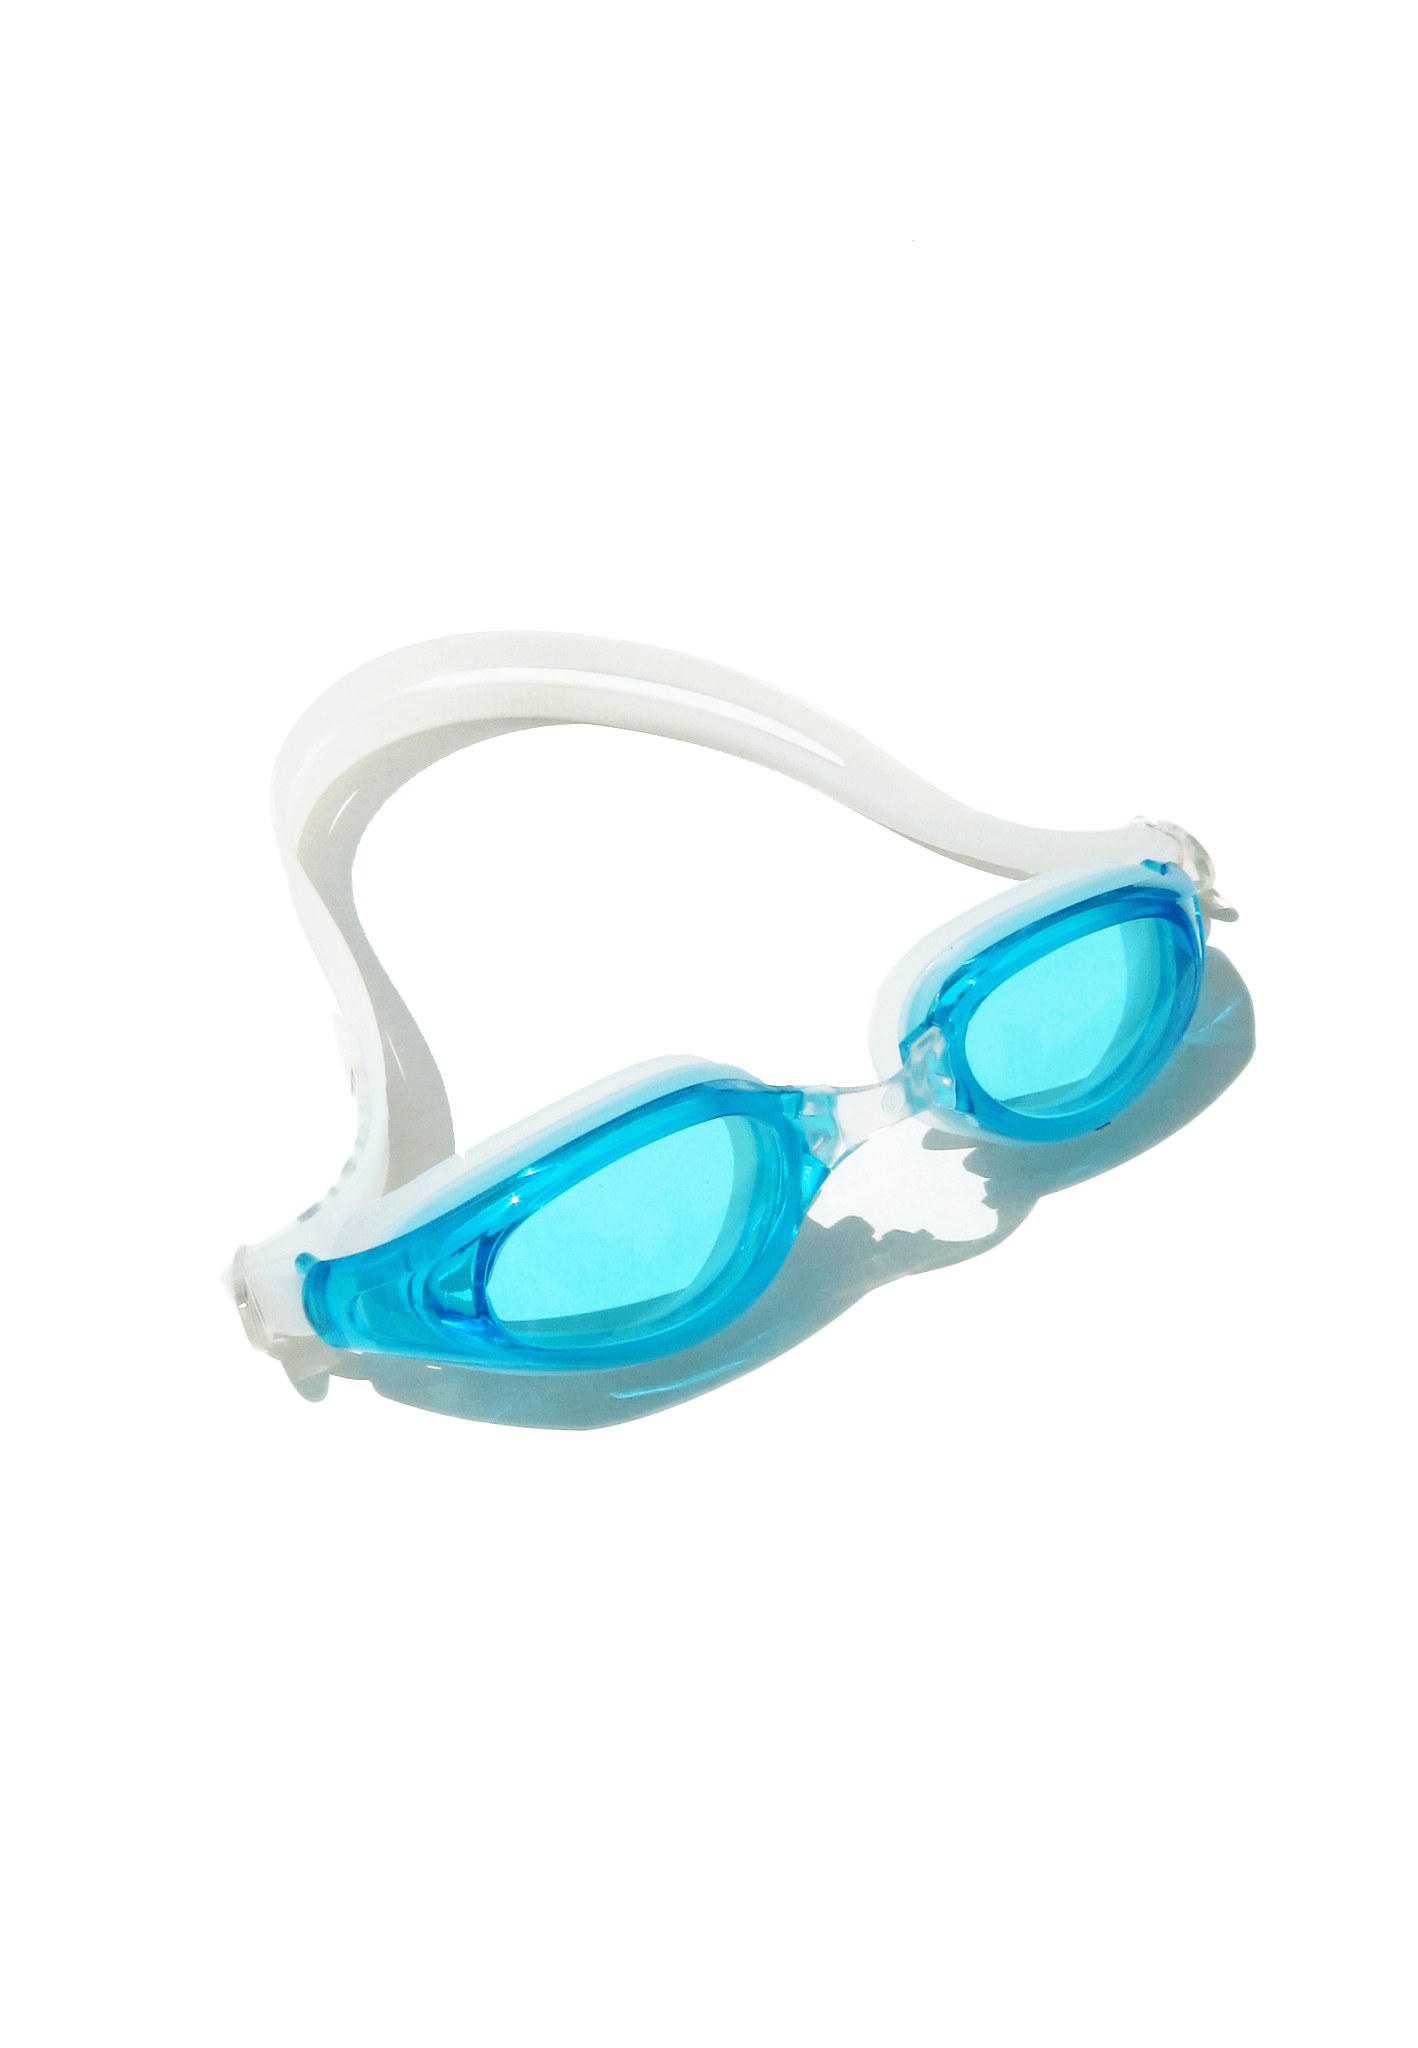 FUNFIT Leisure Wide-Framed Goggles (Turquoise)